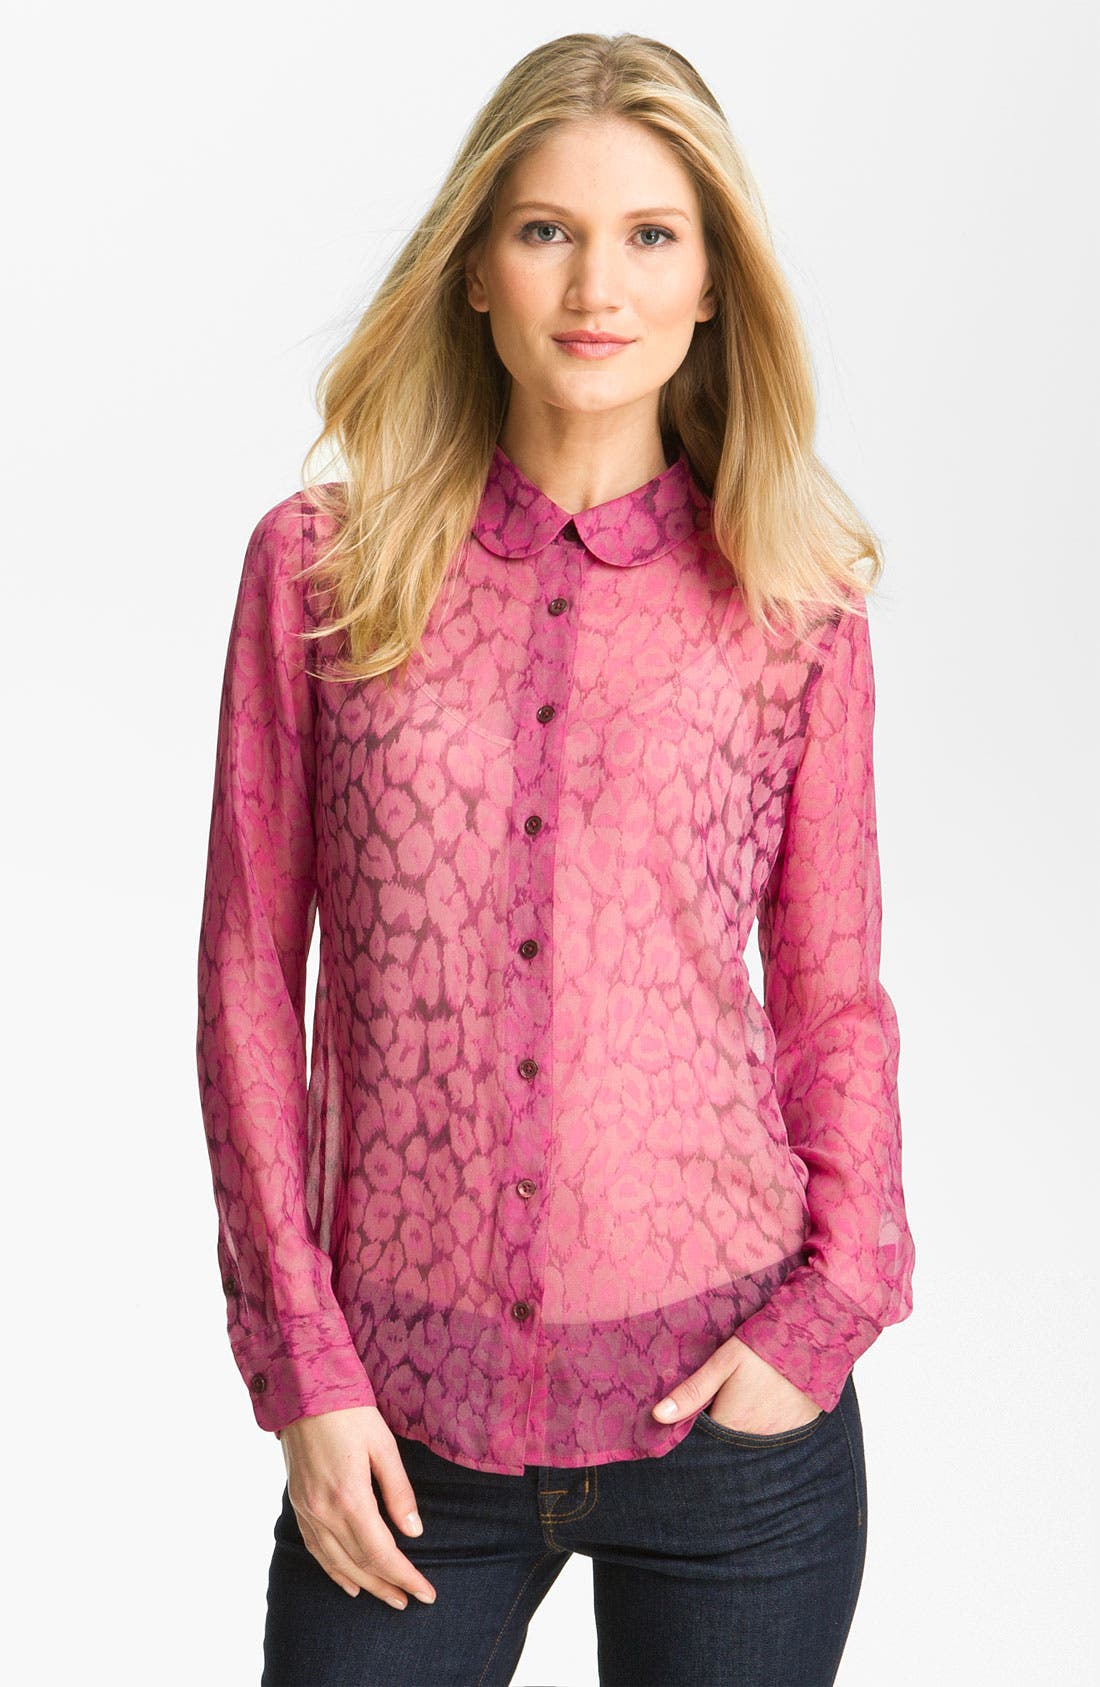 Alternate Image 1 Selected - Equipment 'Sophie' Print Silk Blouse